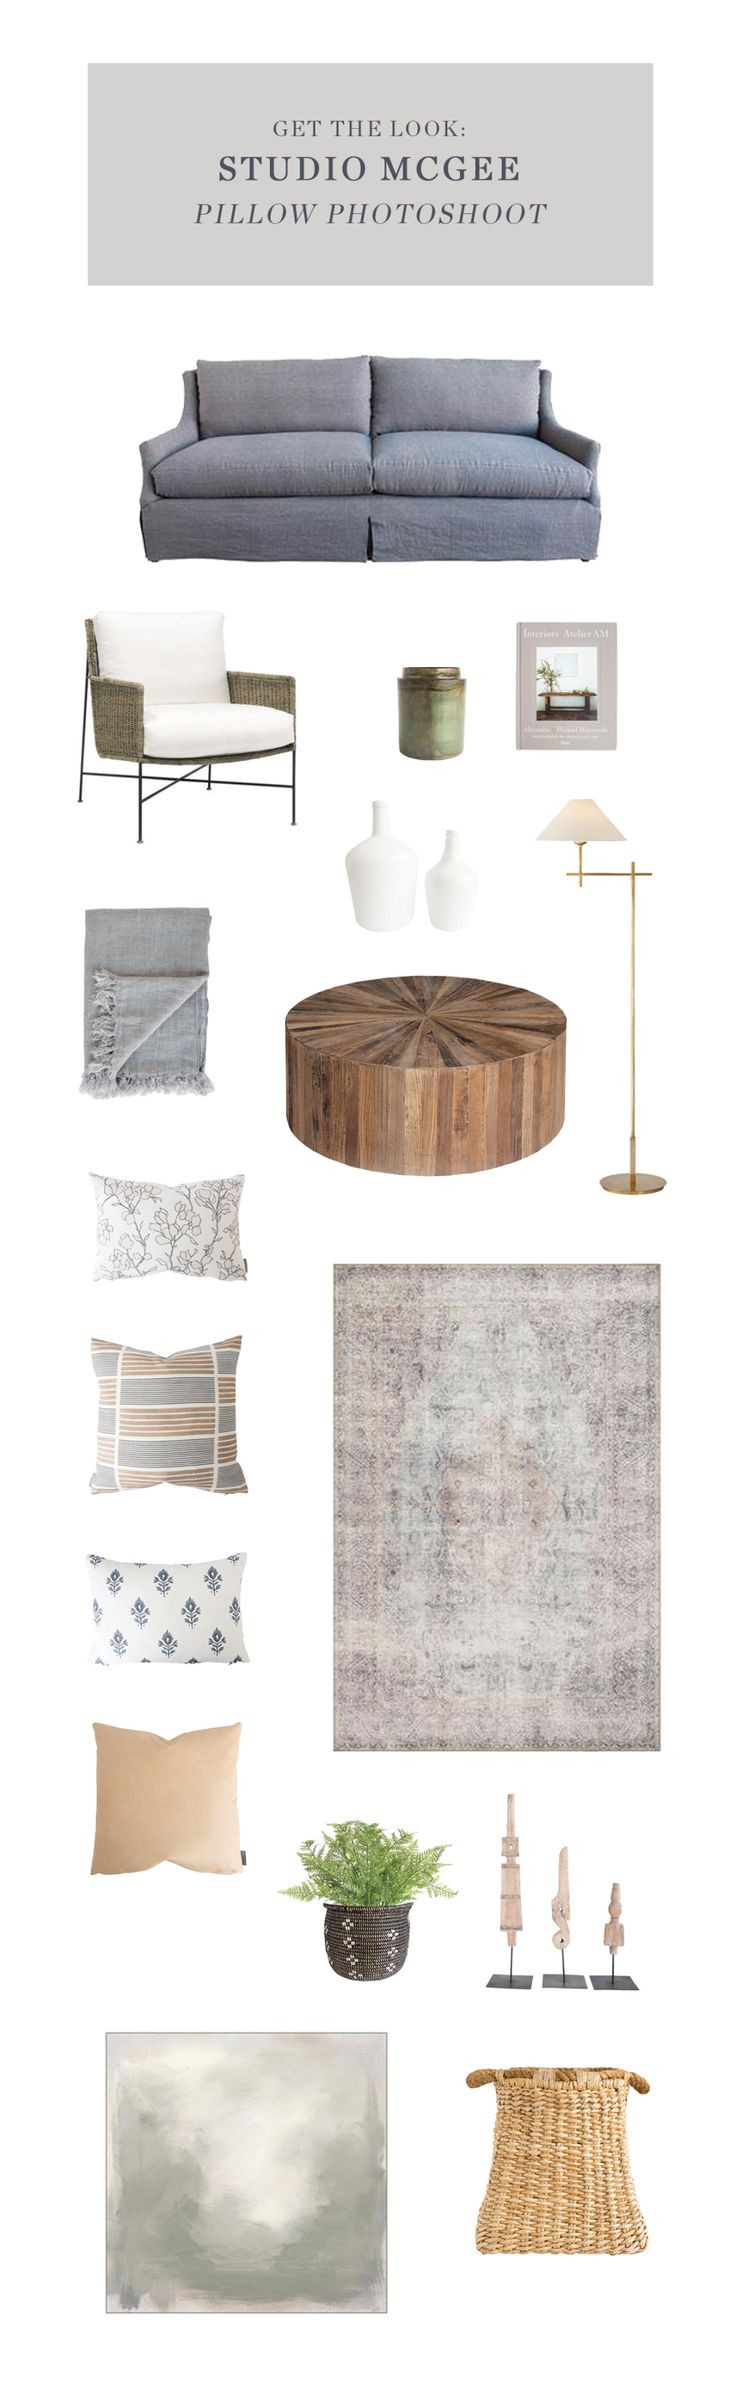 sims hardwood floors florence sc of best 21 dn'd¾d±n‹ d¾d±dµddµd½d½n‹dµ ideas on pinterest dining room dining in behind the scenes designer pillow photoshoot